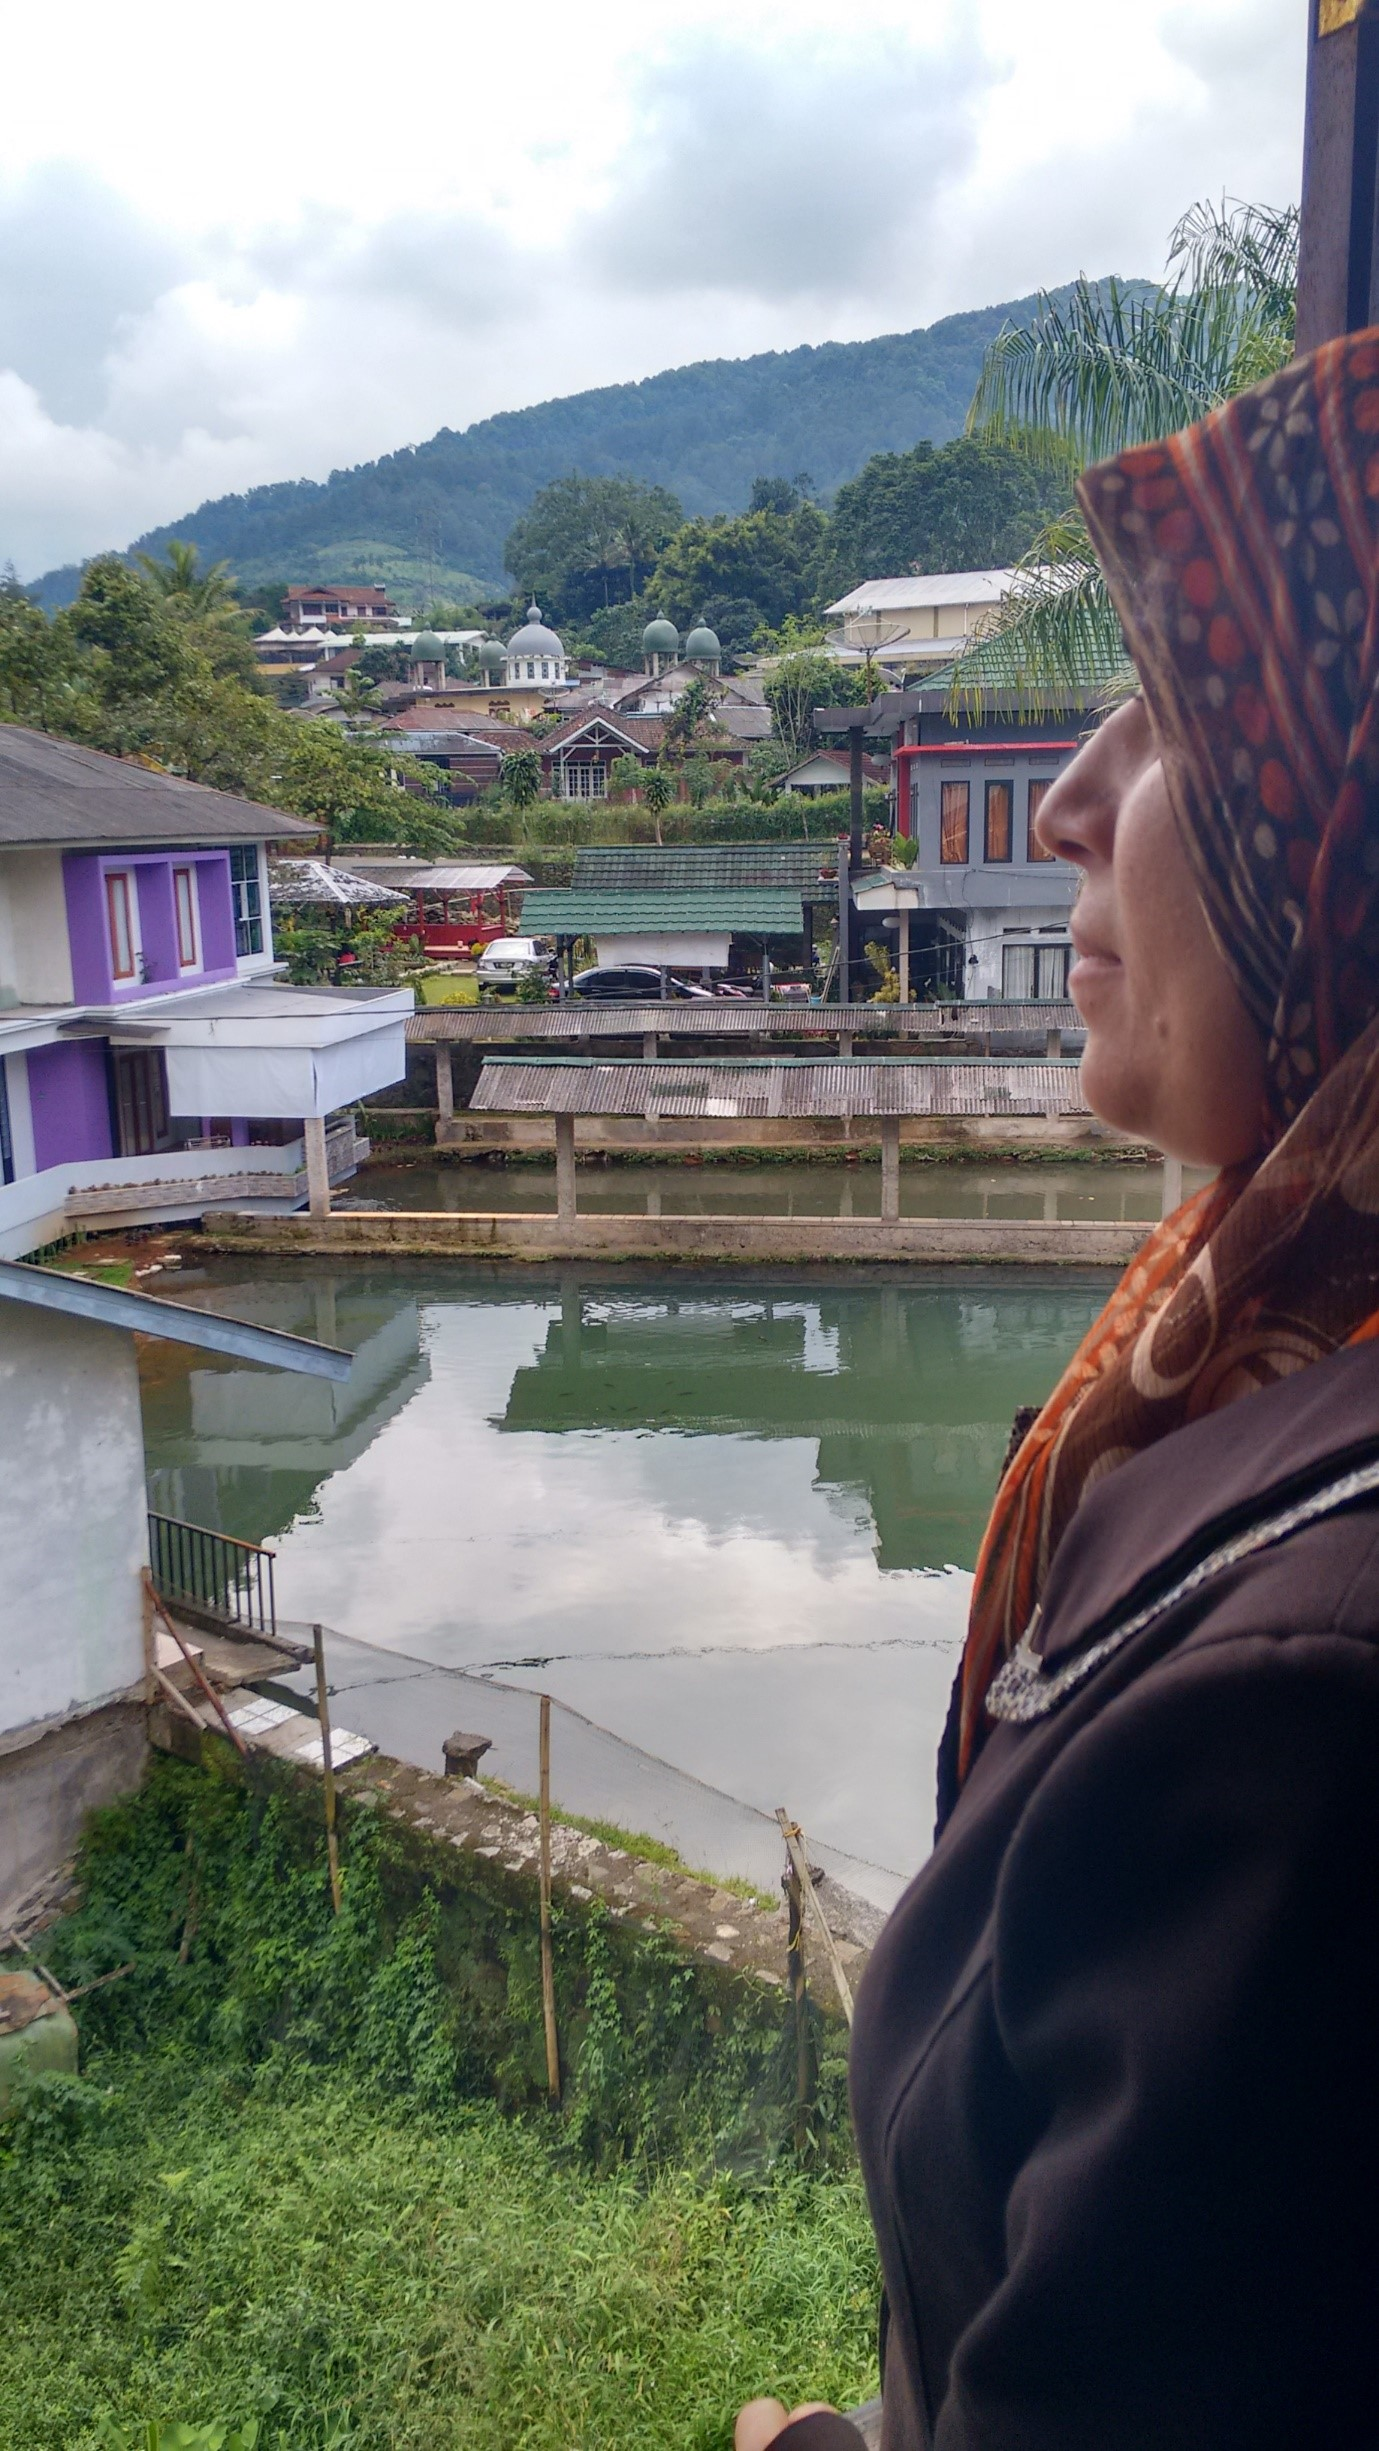 Maysoon looks out over Ciasura in Indonesia where she and her family have spent the last nine months waiting for UNHCR to process their asylum applications